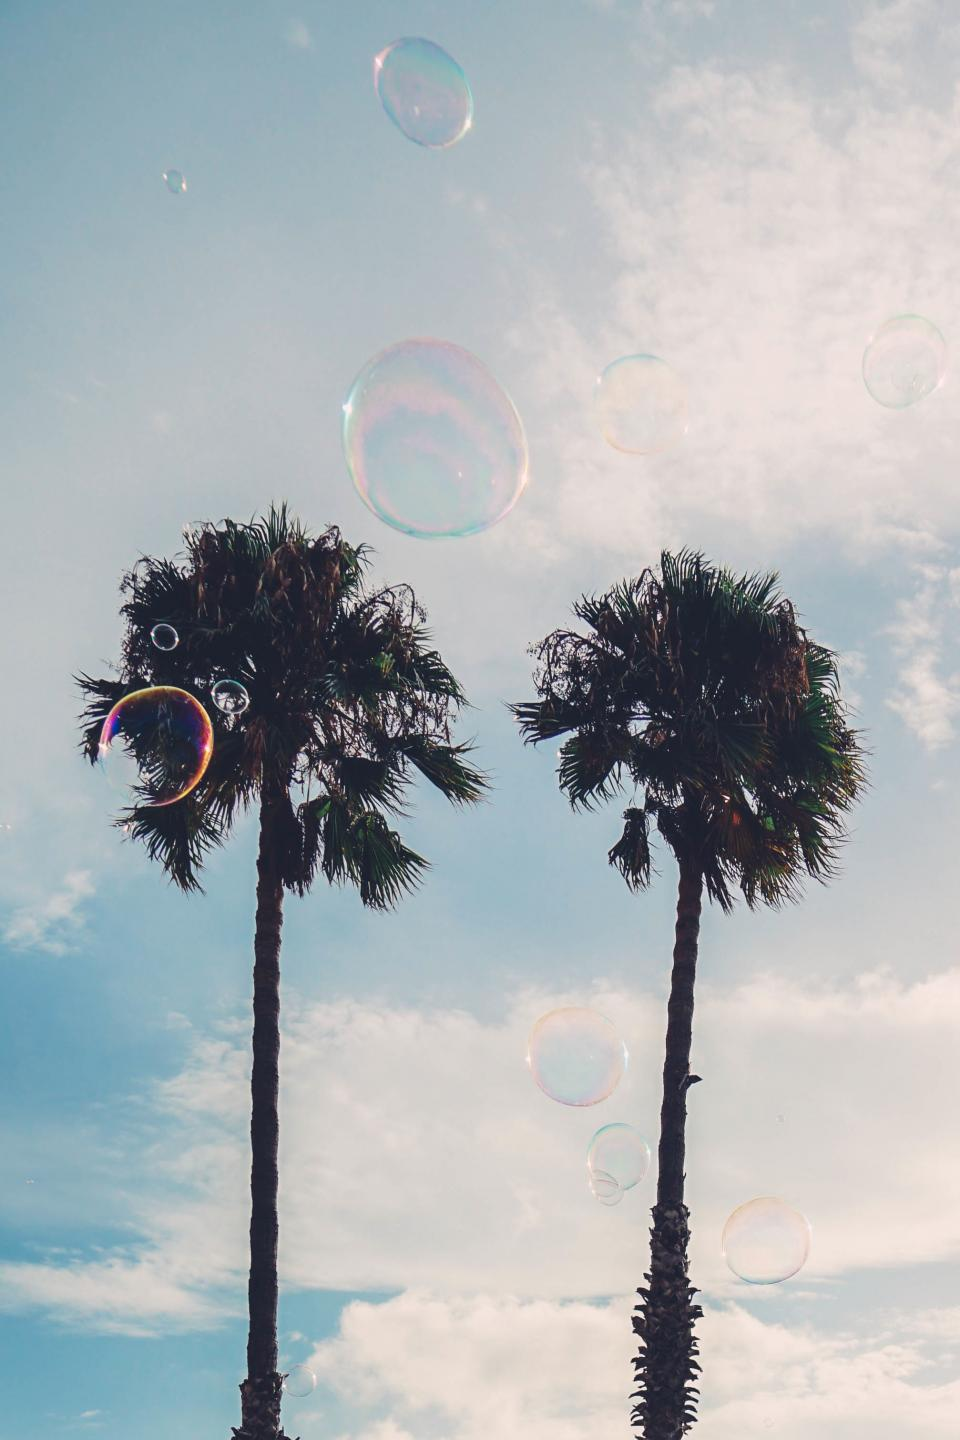 tree plant nature sky clouds bubbles sunny summer